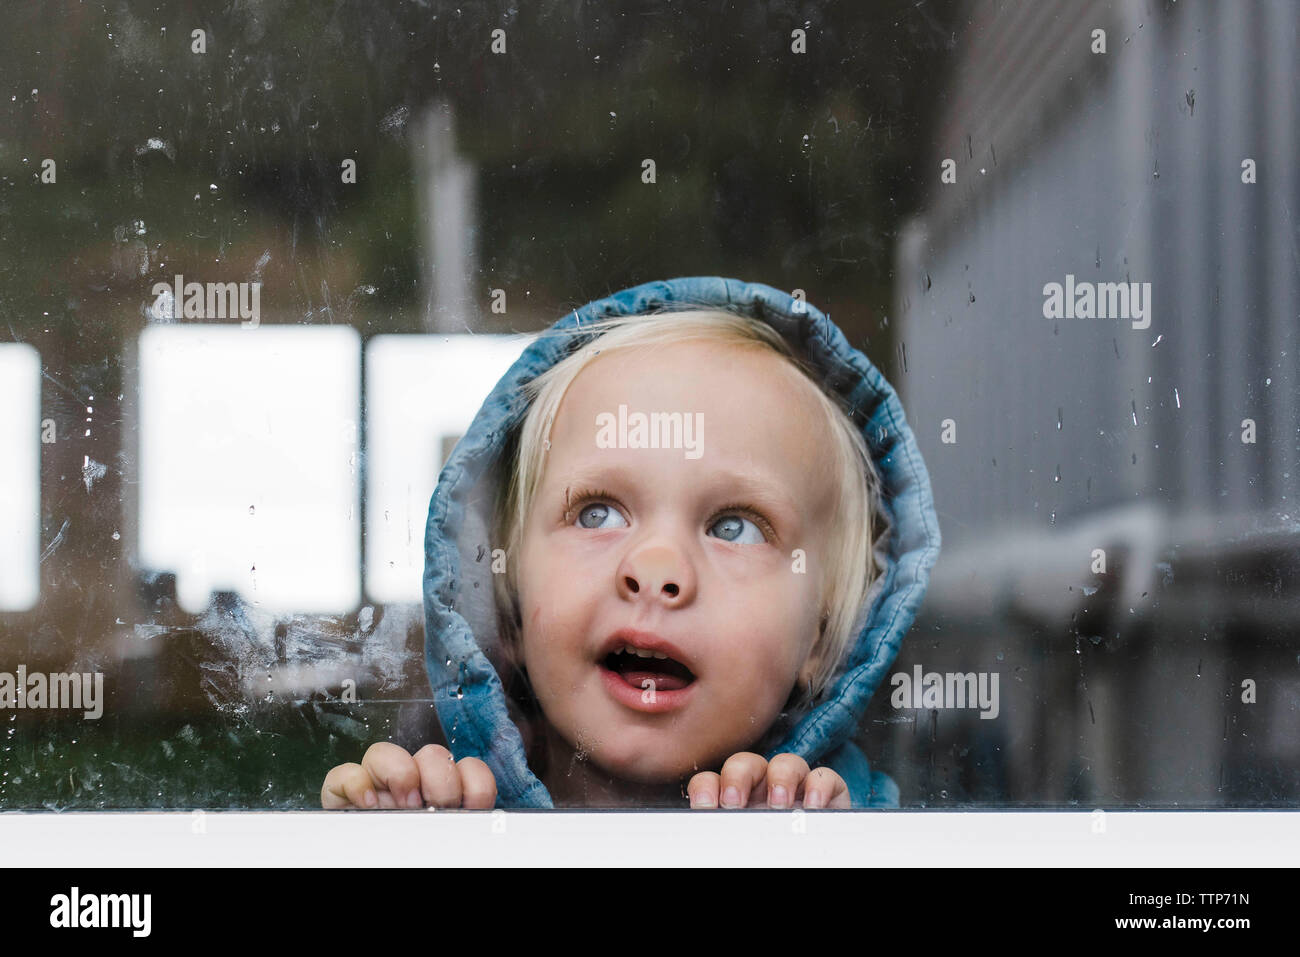 Close-up of girl looking through window seen through glass - Stock Image